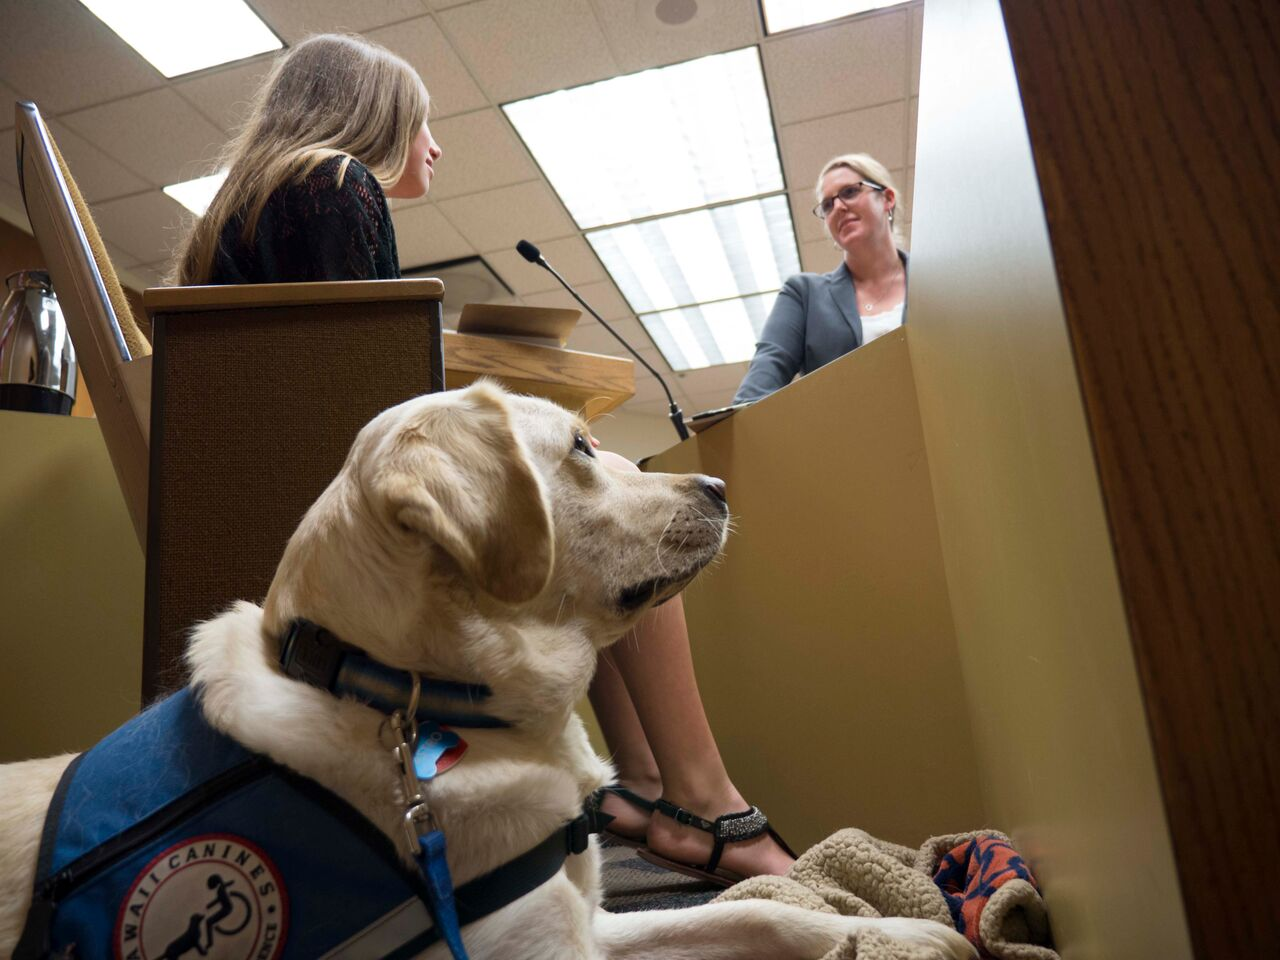 Courthouse facility dog. By David Walsen [CC BY-SA 3.0 (https://creativecommons.org/licenses/by-sa/3.0) or GFDL (http://www.gnu.org/copyleft/fdl.html)], via Wikimedia Commons